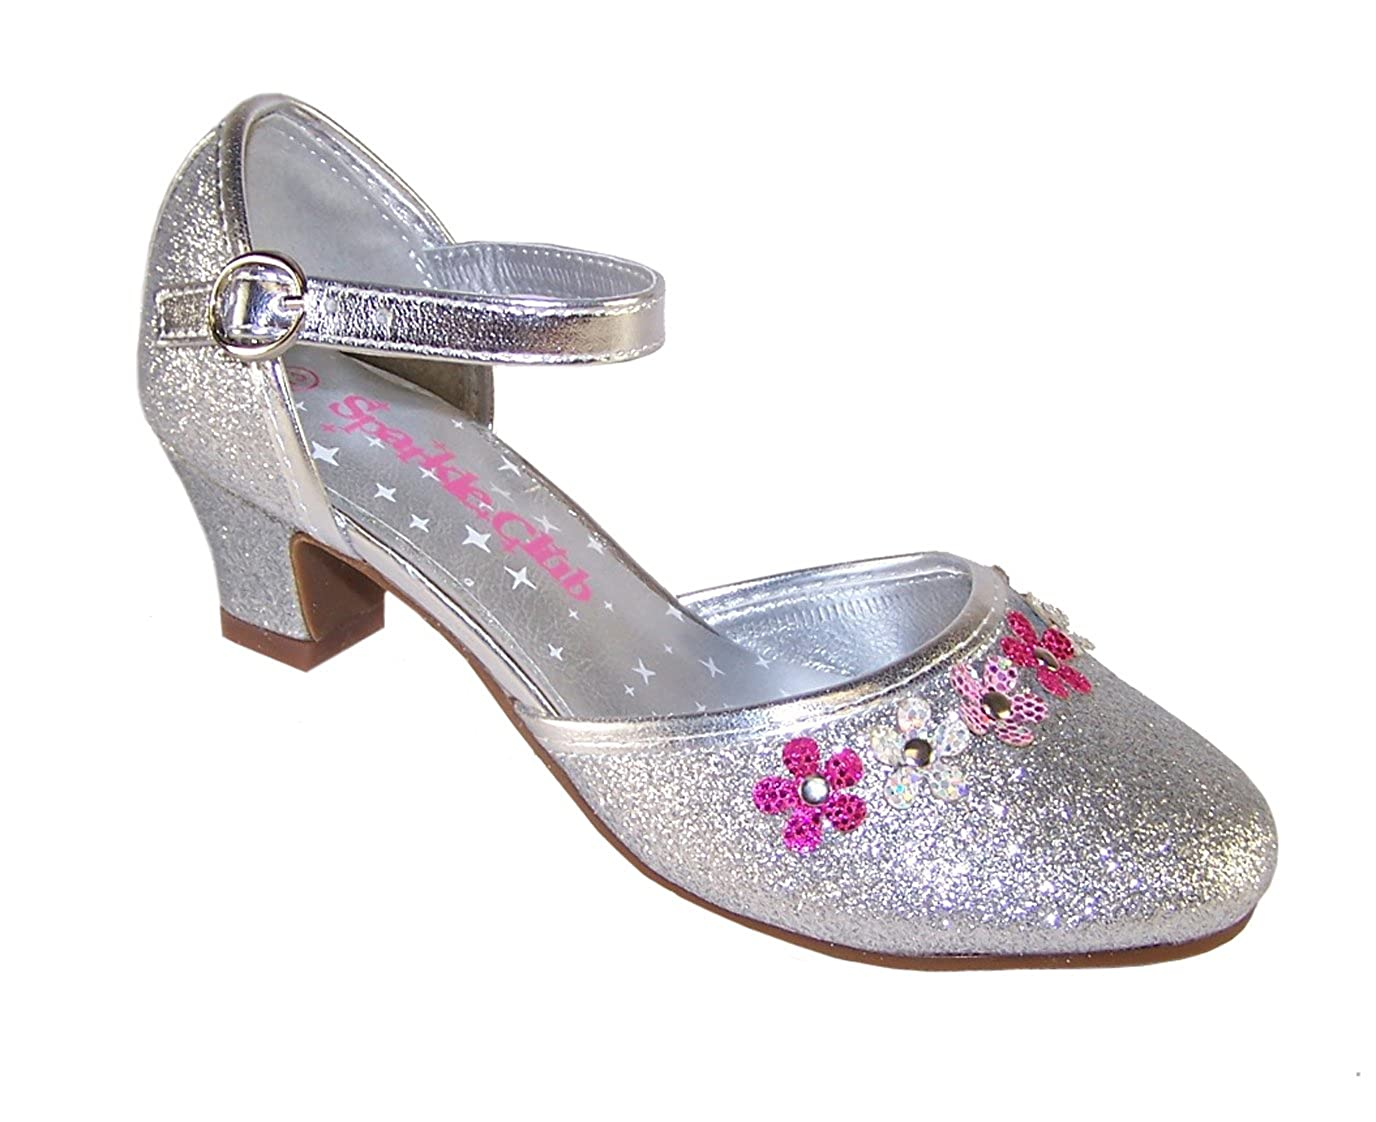 808467c469d Girls silver glitter low heeled party shoes